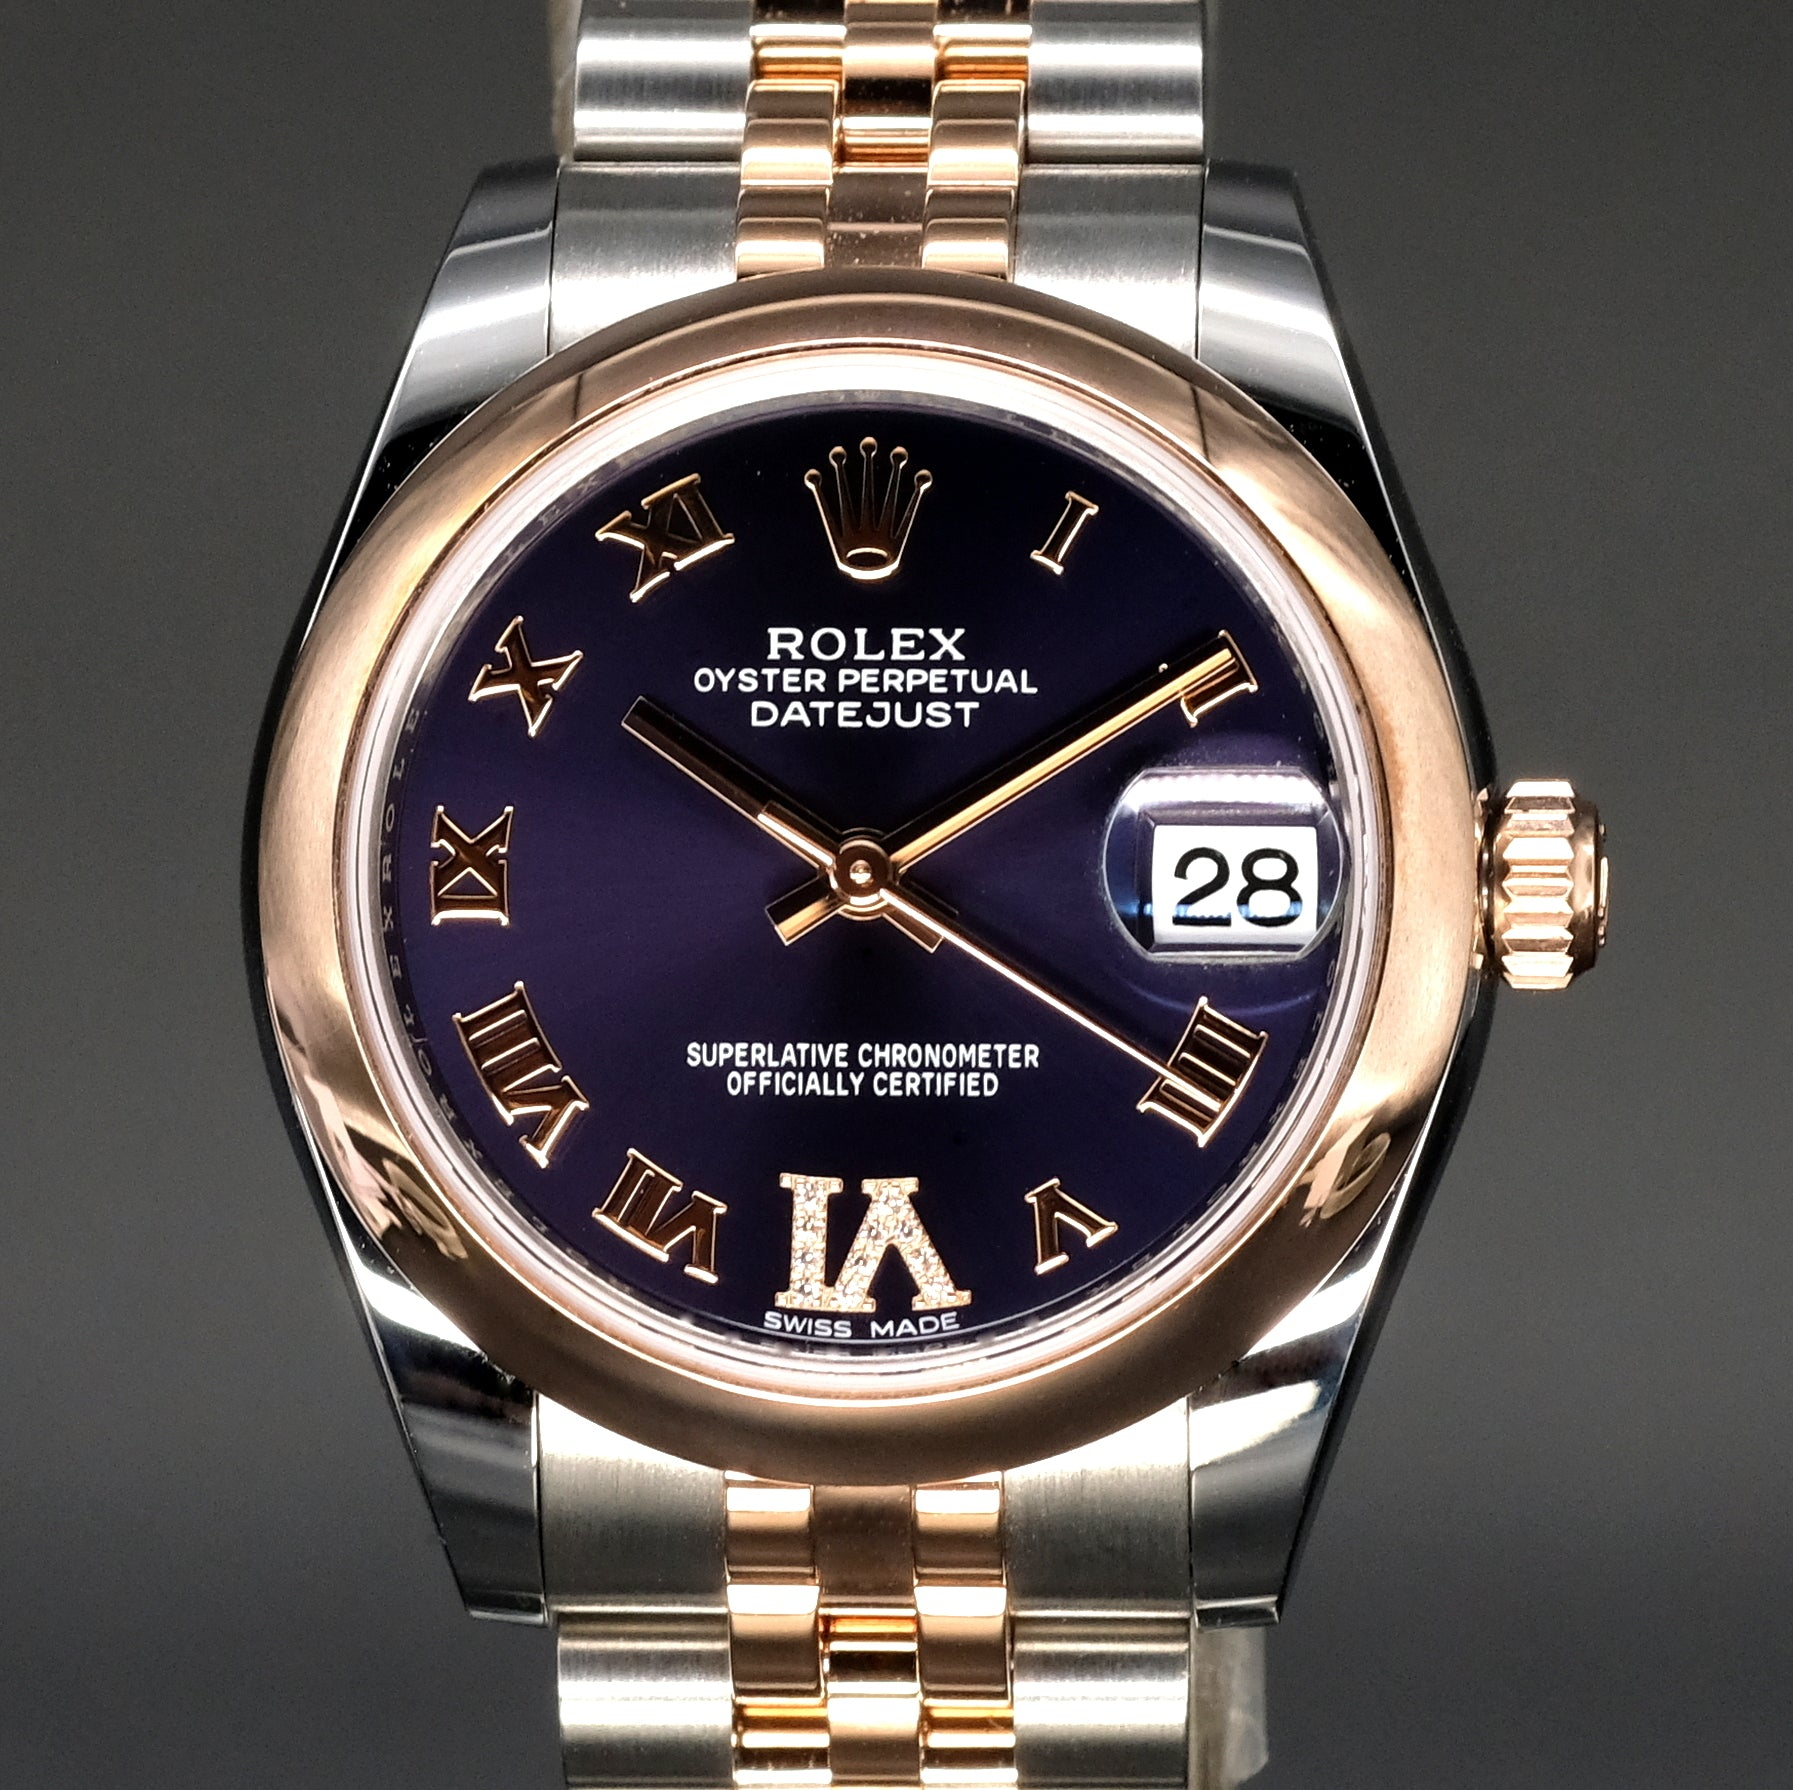 [Brand New Watch] Rolex Datejust 31mm 178241 Purple Dial with VI Diamonds (Jubilee Bracelet)